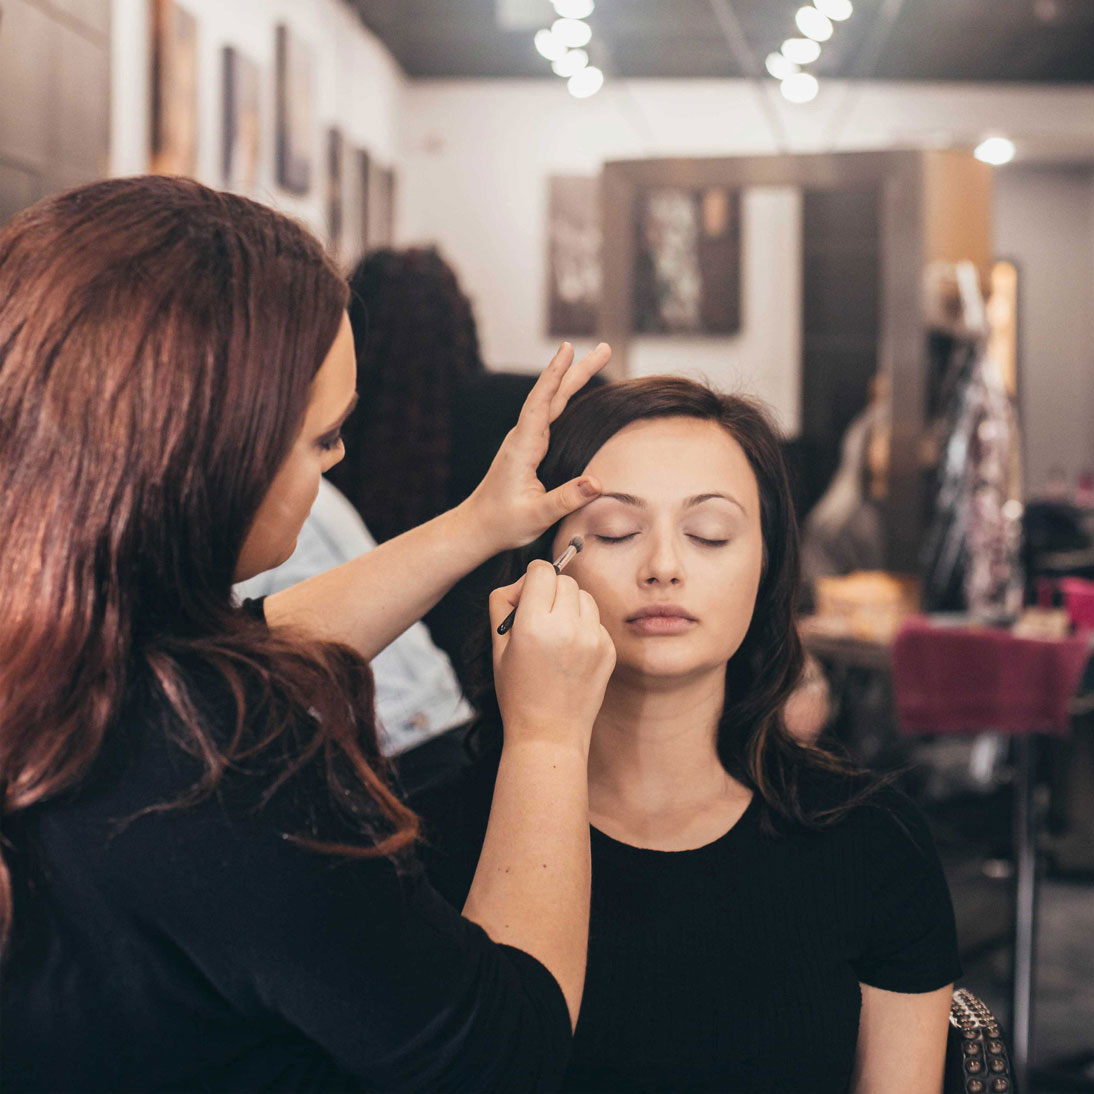 Whether you want a day or evening look, going to prom or getting ready for your big day, we are here to make sure you look beautiful for any occasion!